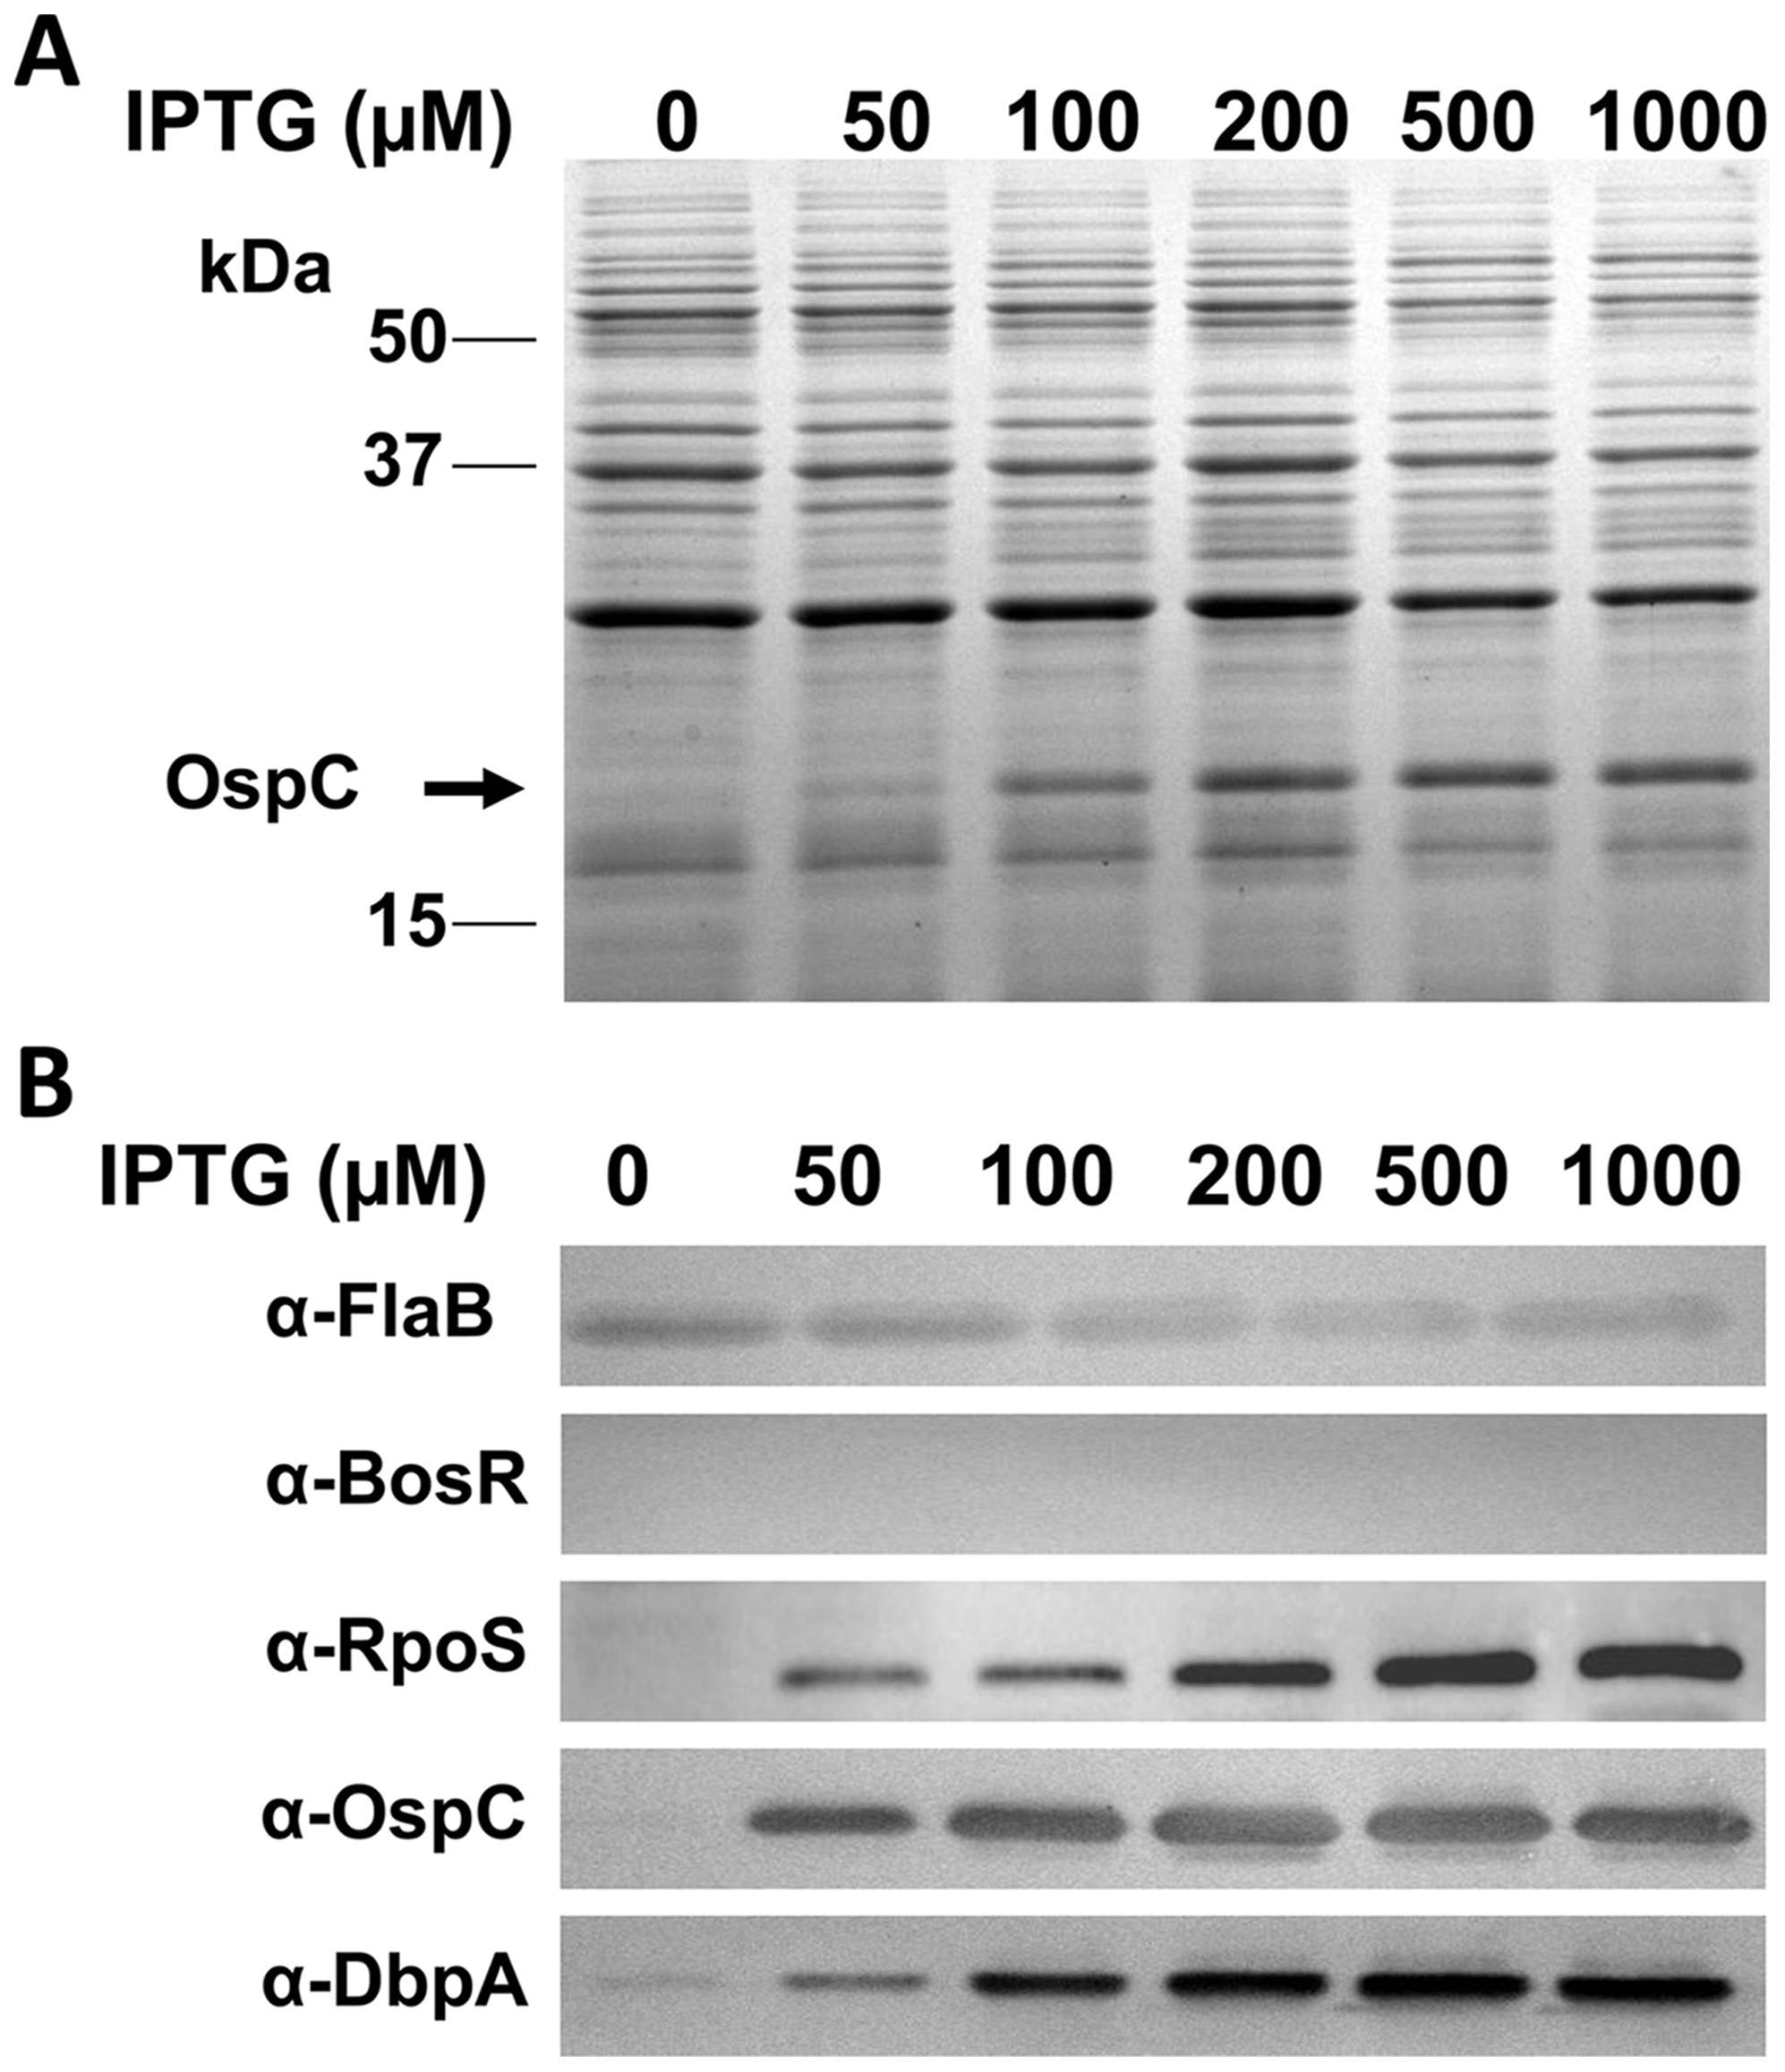 Induction of <i>rpoS</i> by IPTG results in the synthesis of OspC and DbpA in the <i>bosR</i> mutant.